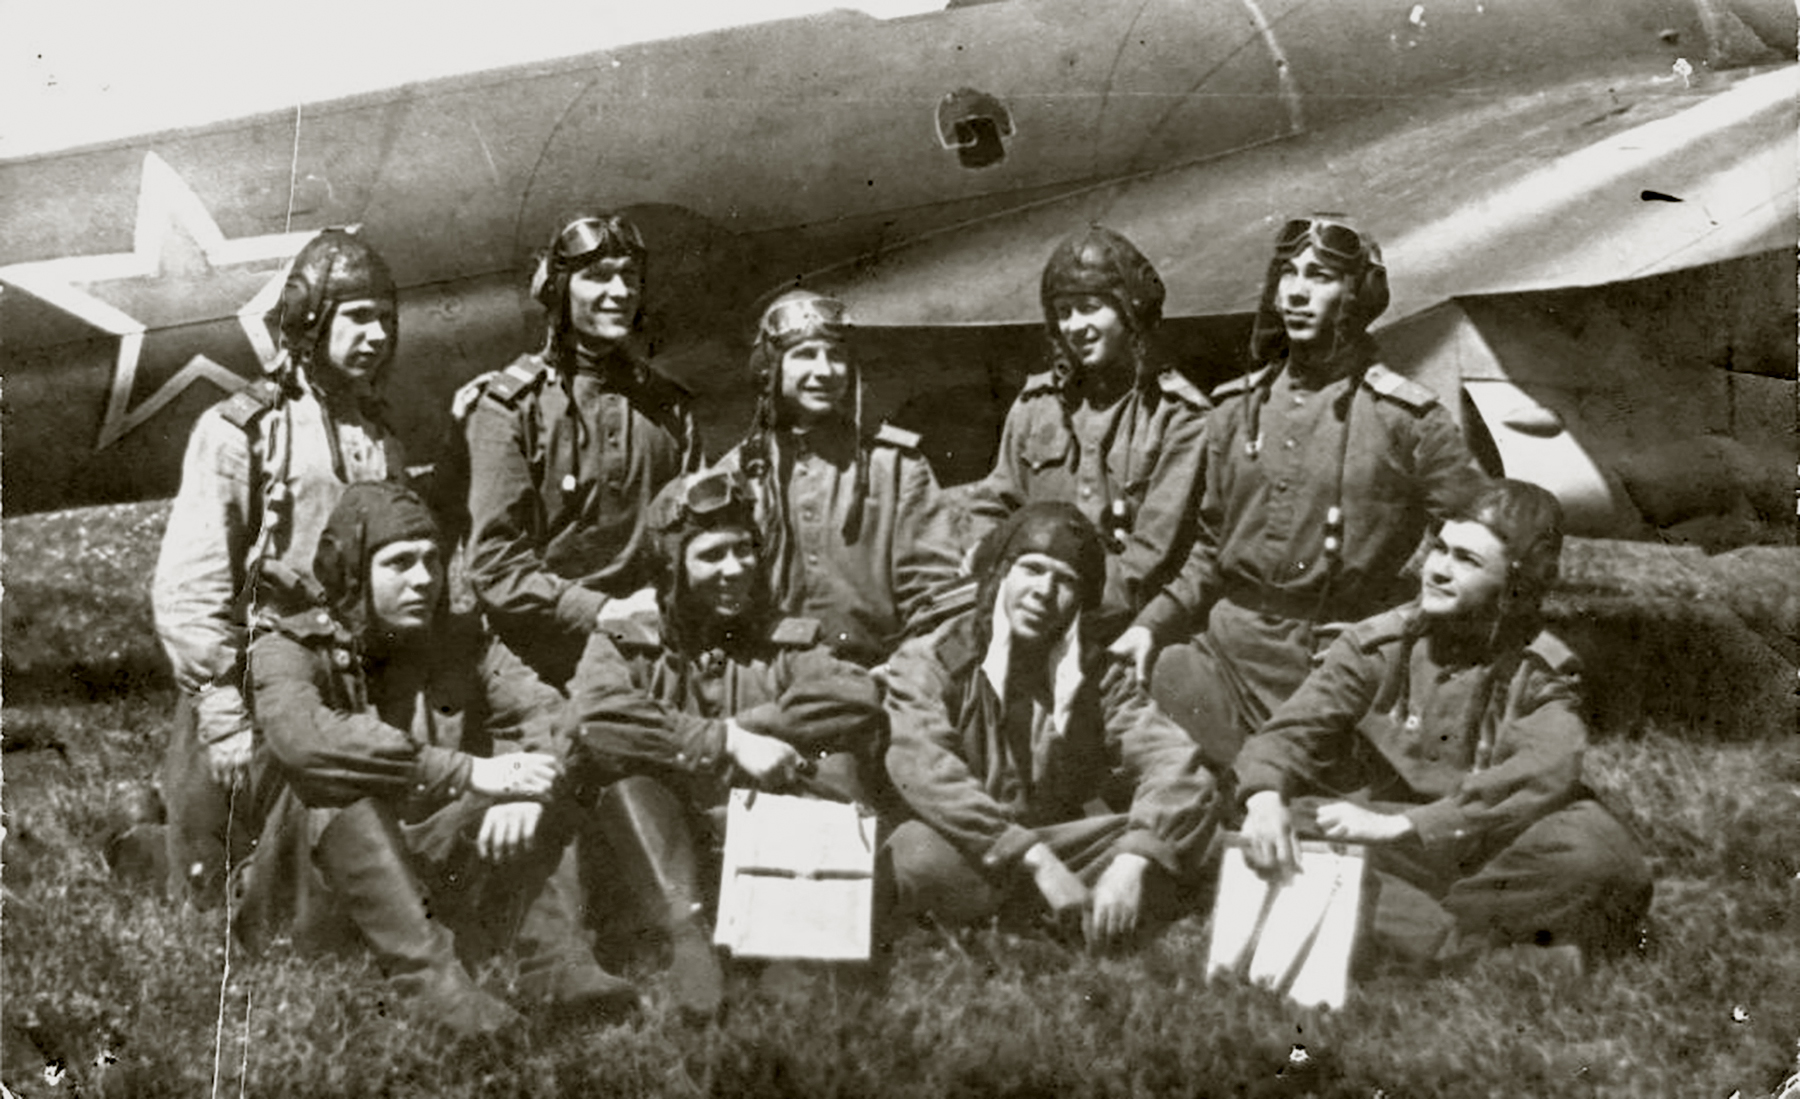 Aircrew Soviet 127GvBAP with Kuzma A Konkov (top row 2nd from the right) and colleagues Stalingrad front 01